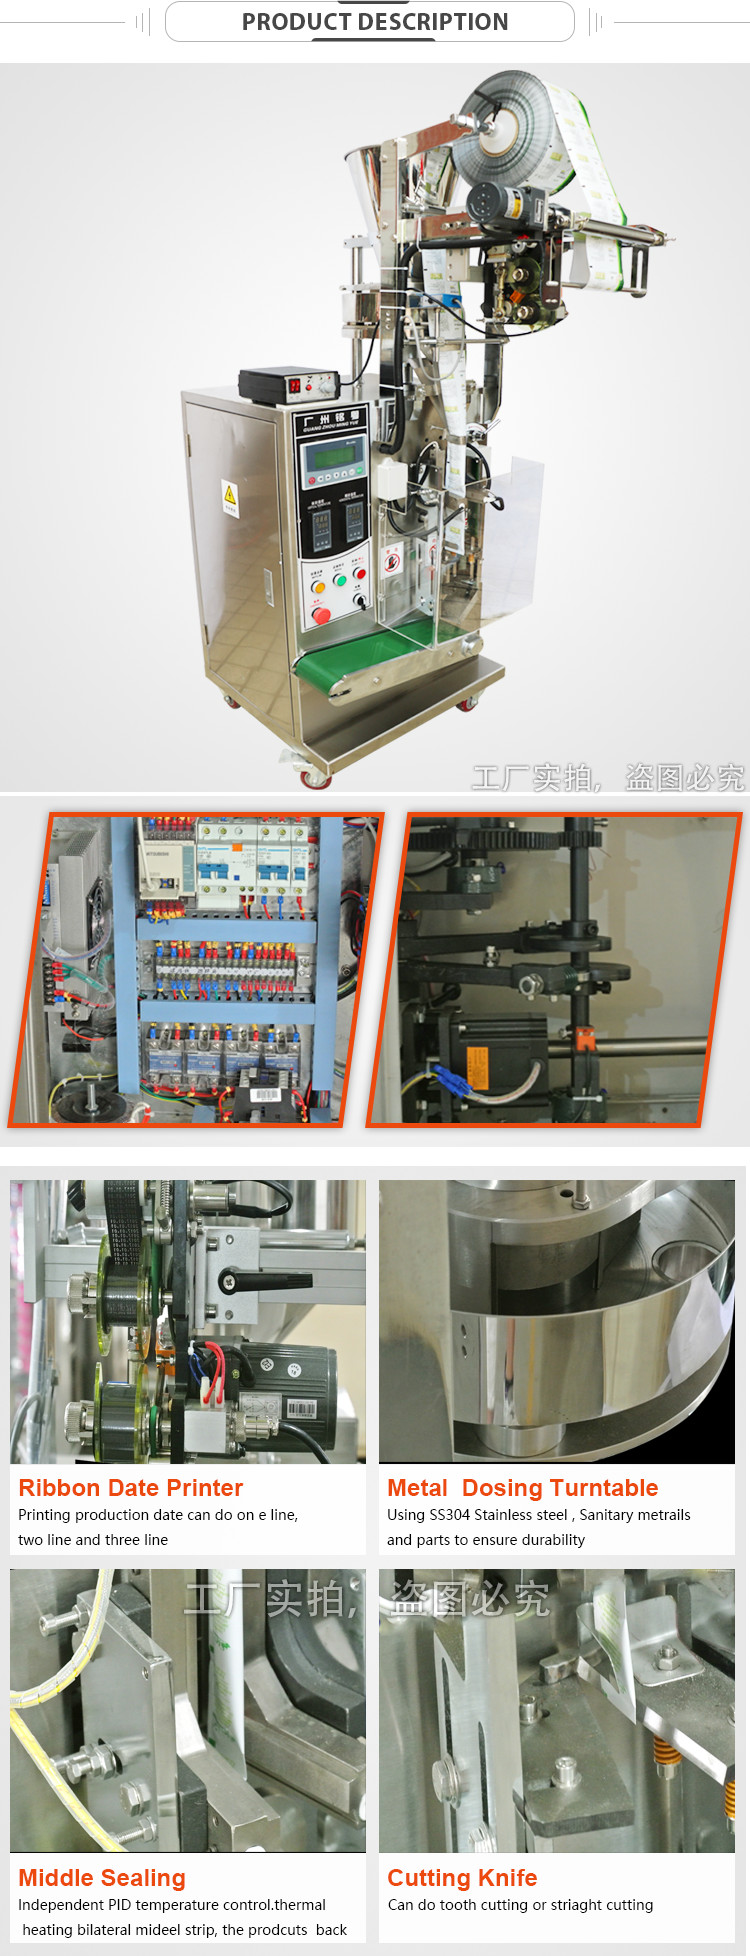 Factory spice rice packaging machine Sugar packing machine